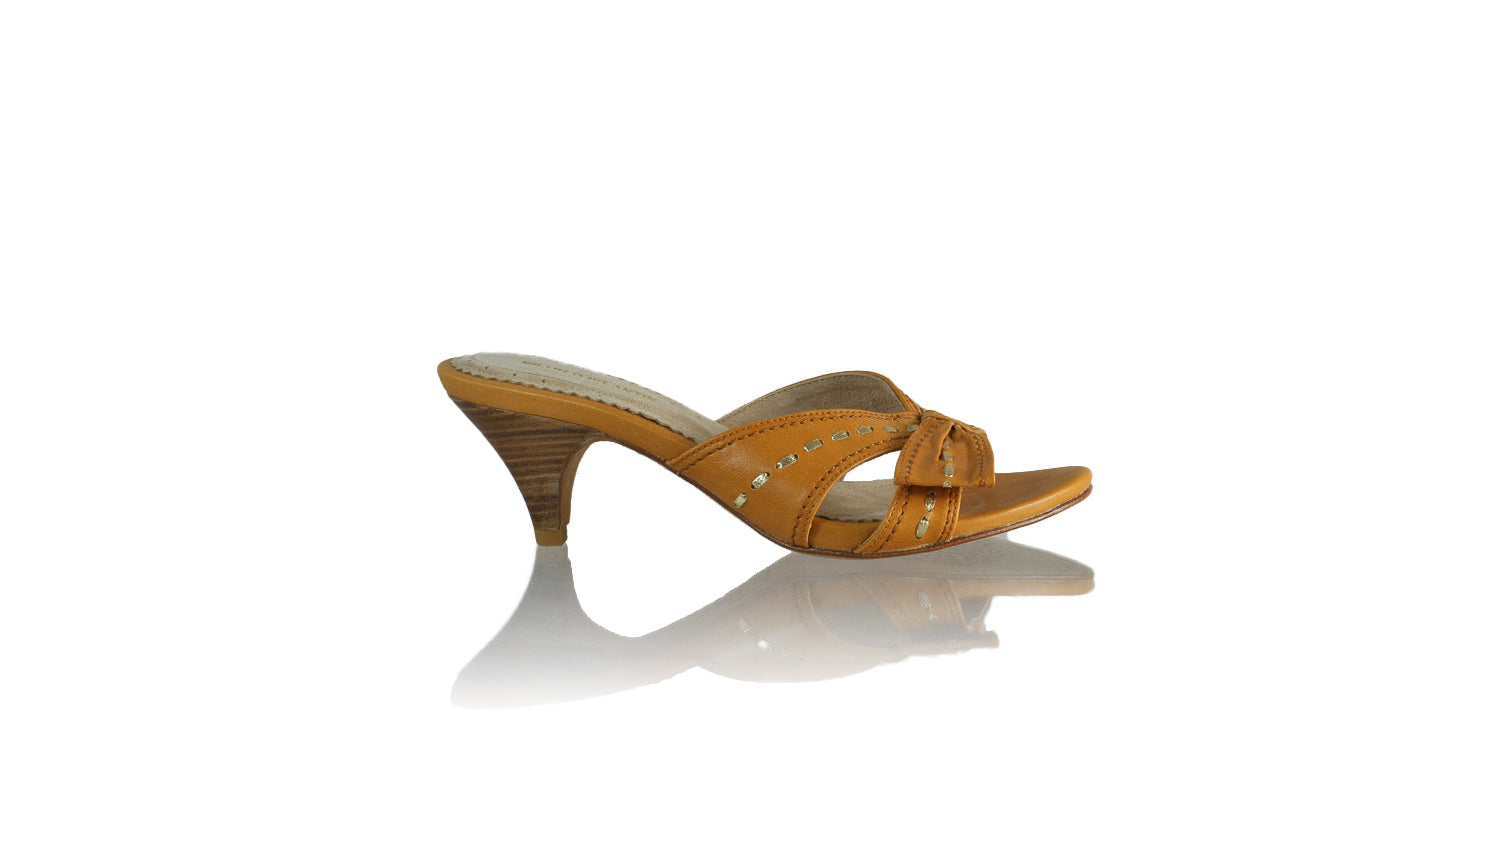 Leather-shoes-Sri 70mm SH - Tan & Gold-sandals midheel-NILUH DJELANTIK-NILUH DJELANTIK